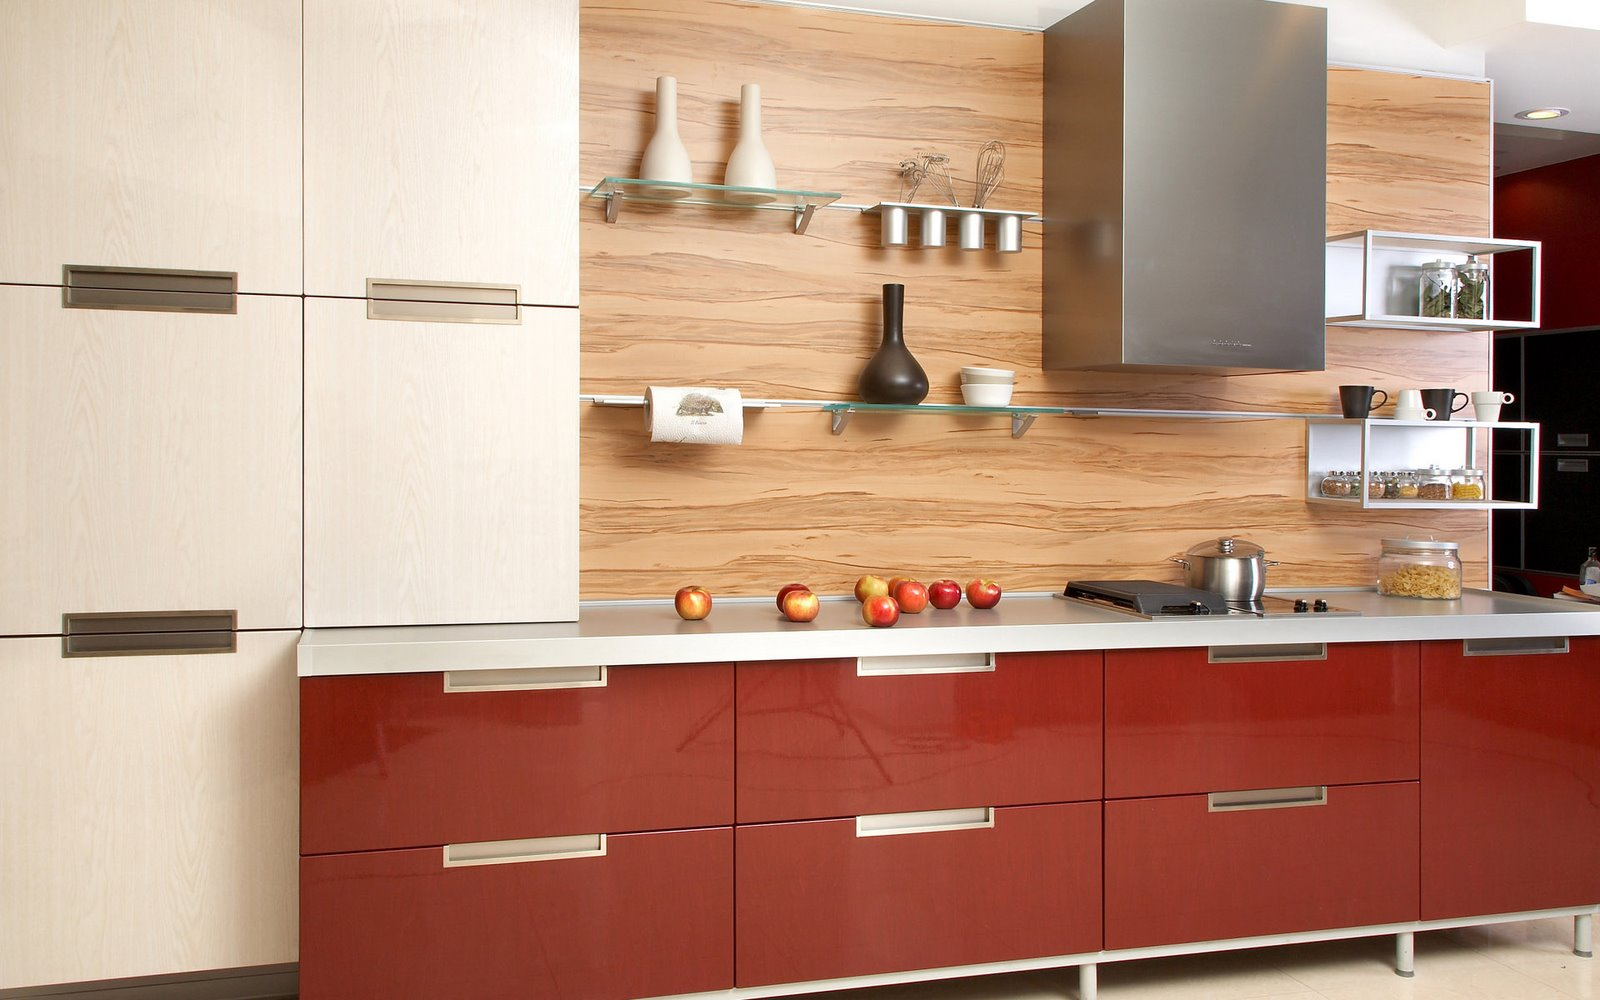 Modern wood kitchen design dream kitchens pinterest for Modern kitchen cabinet designs